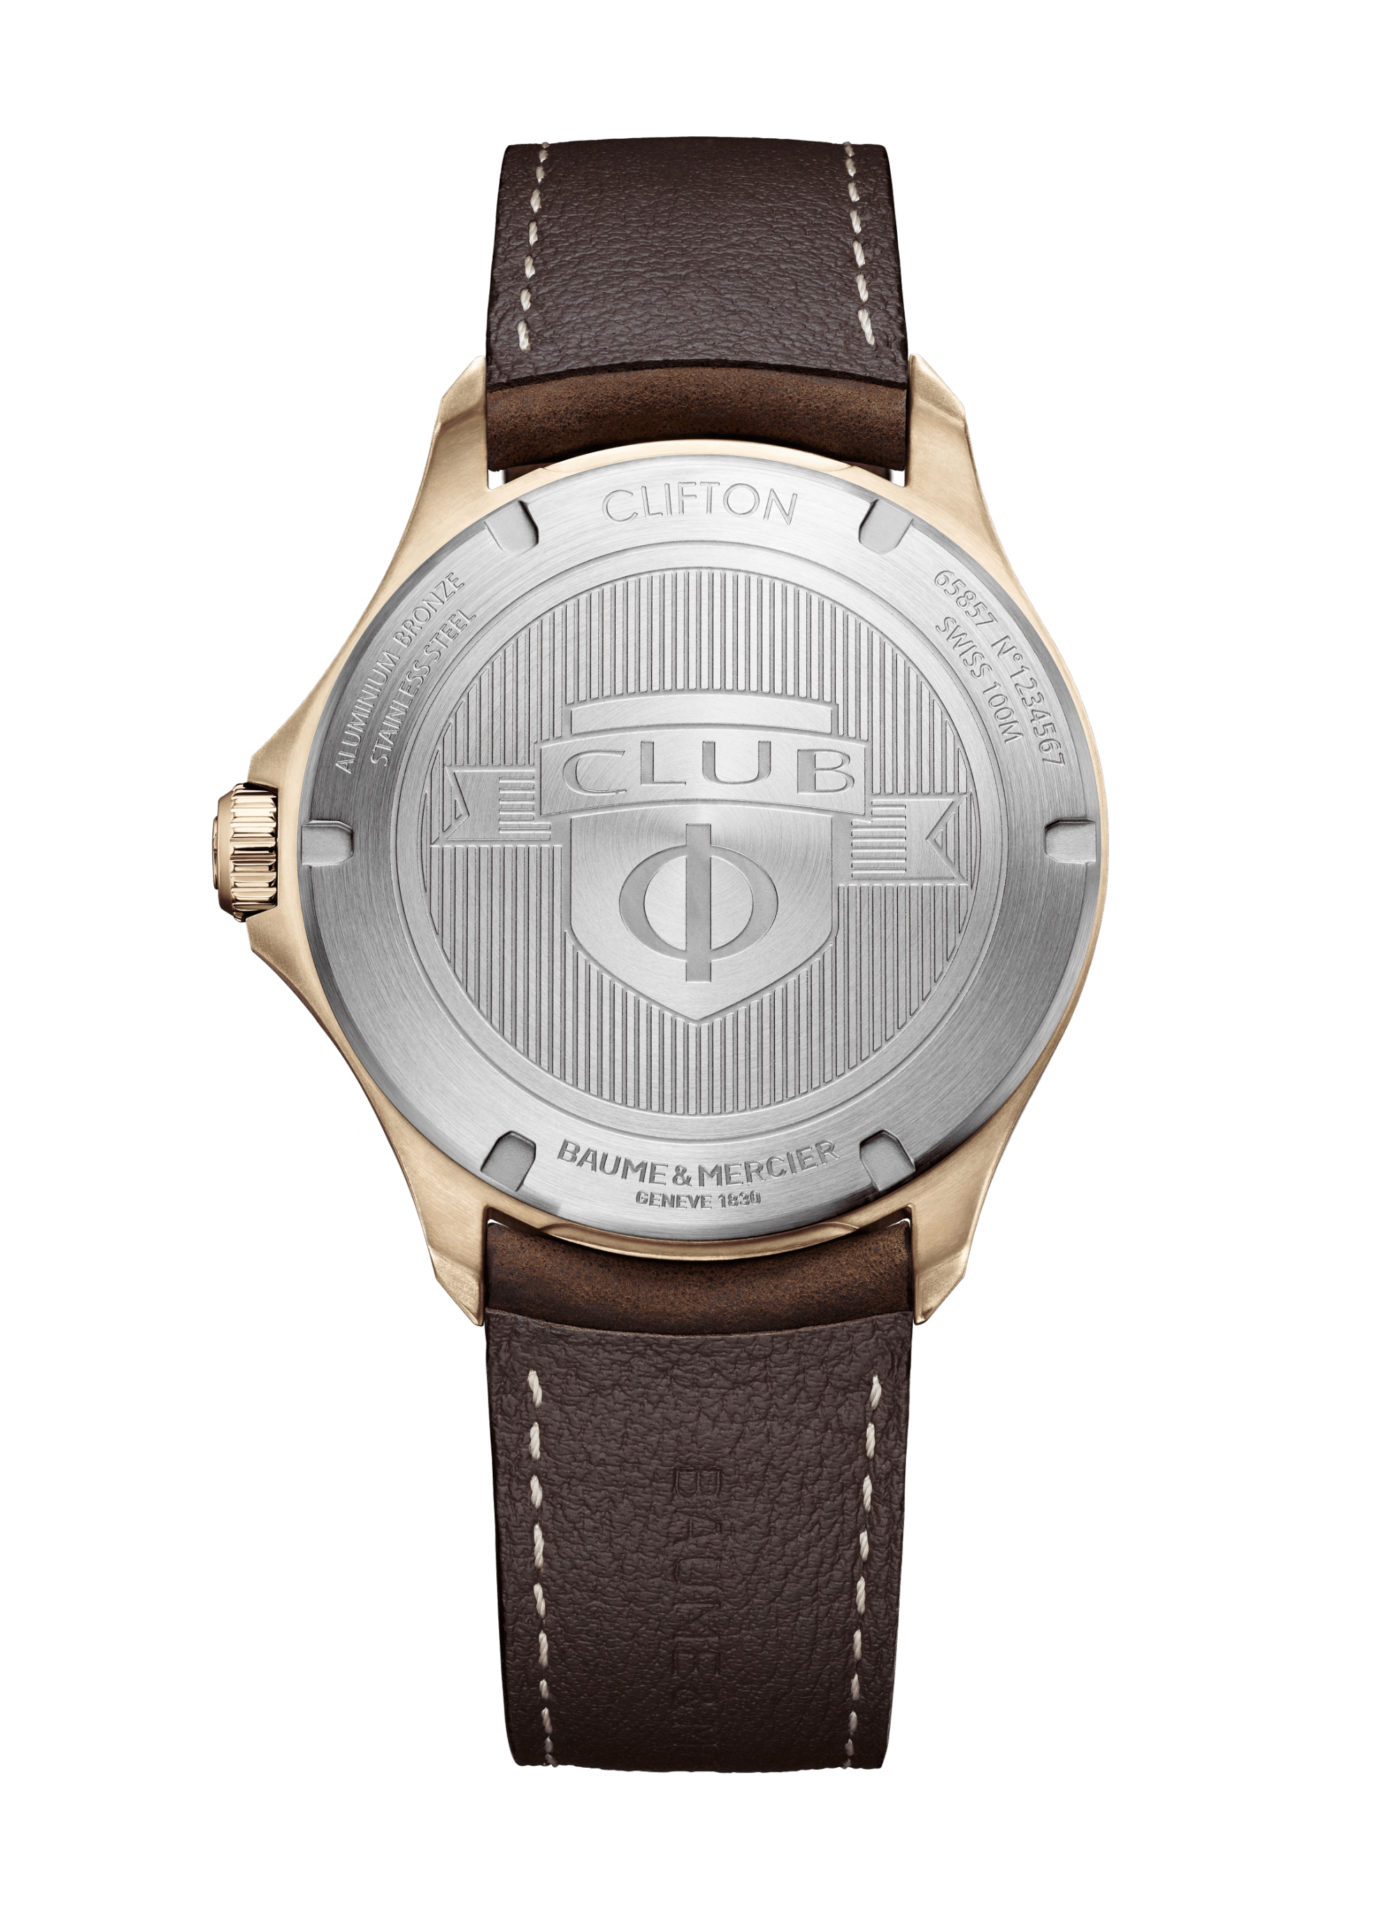 Baume-&-Mercier-Clifton-Club-10503***-Hall-of-Time